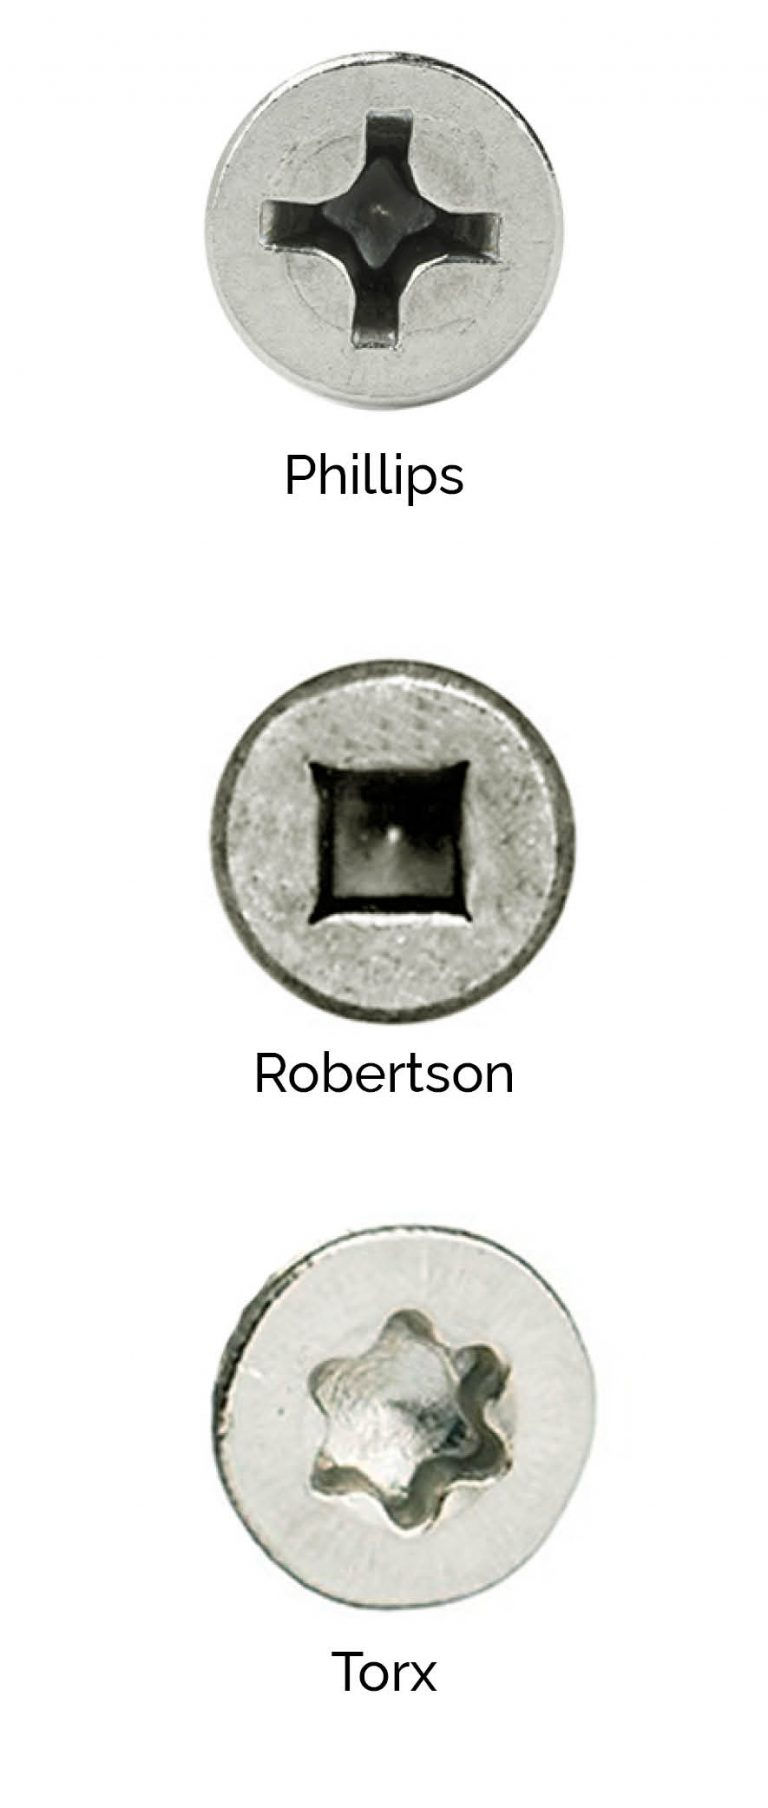 Screw heads showing drive styles